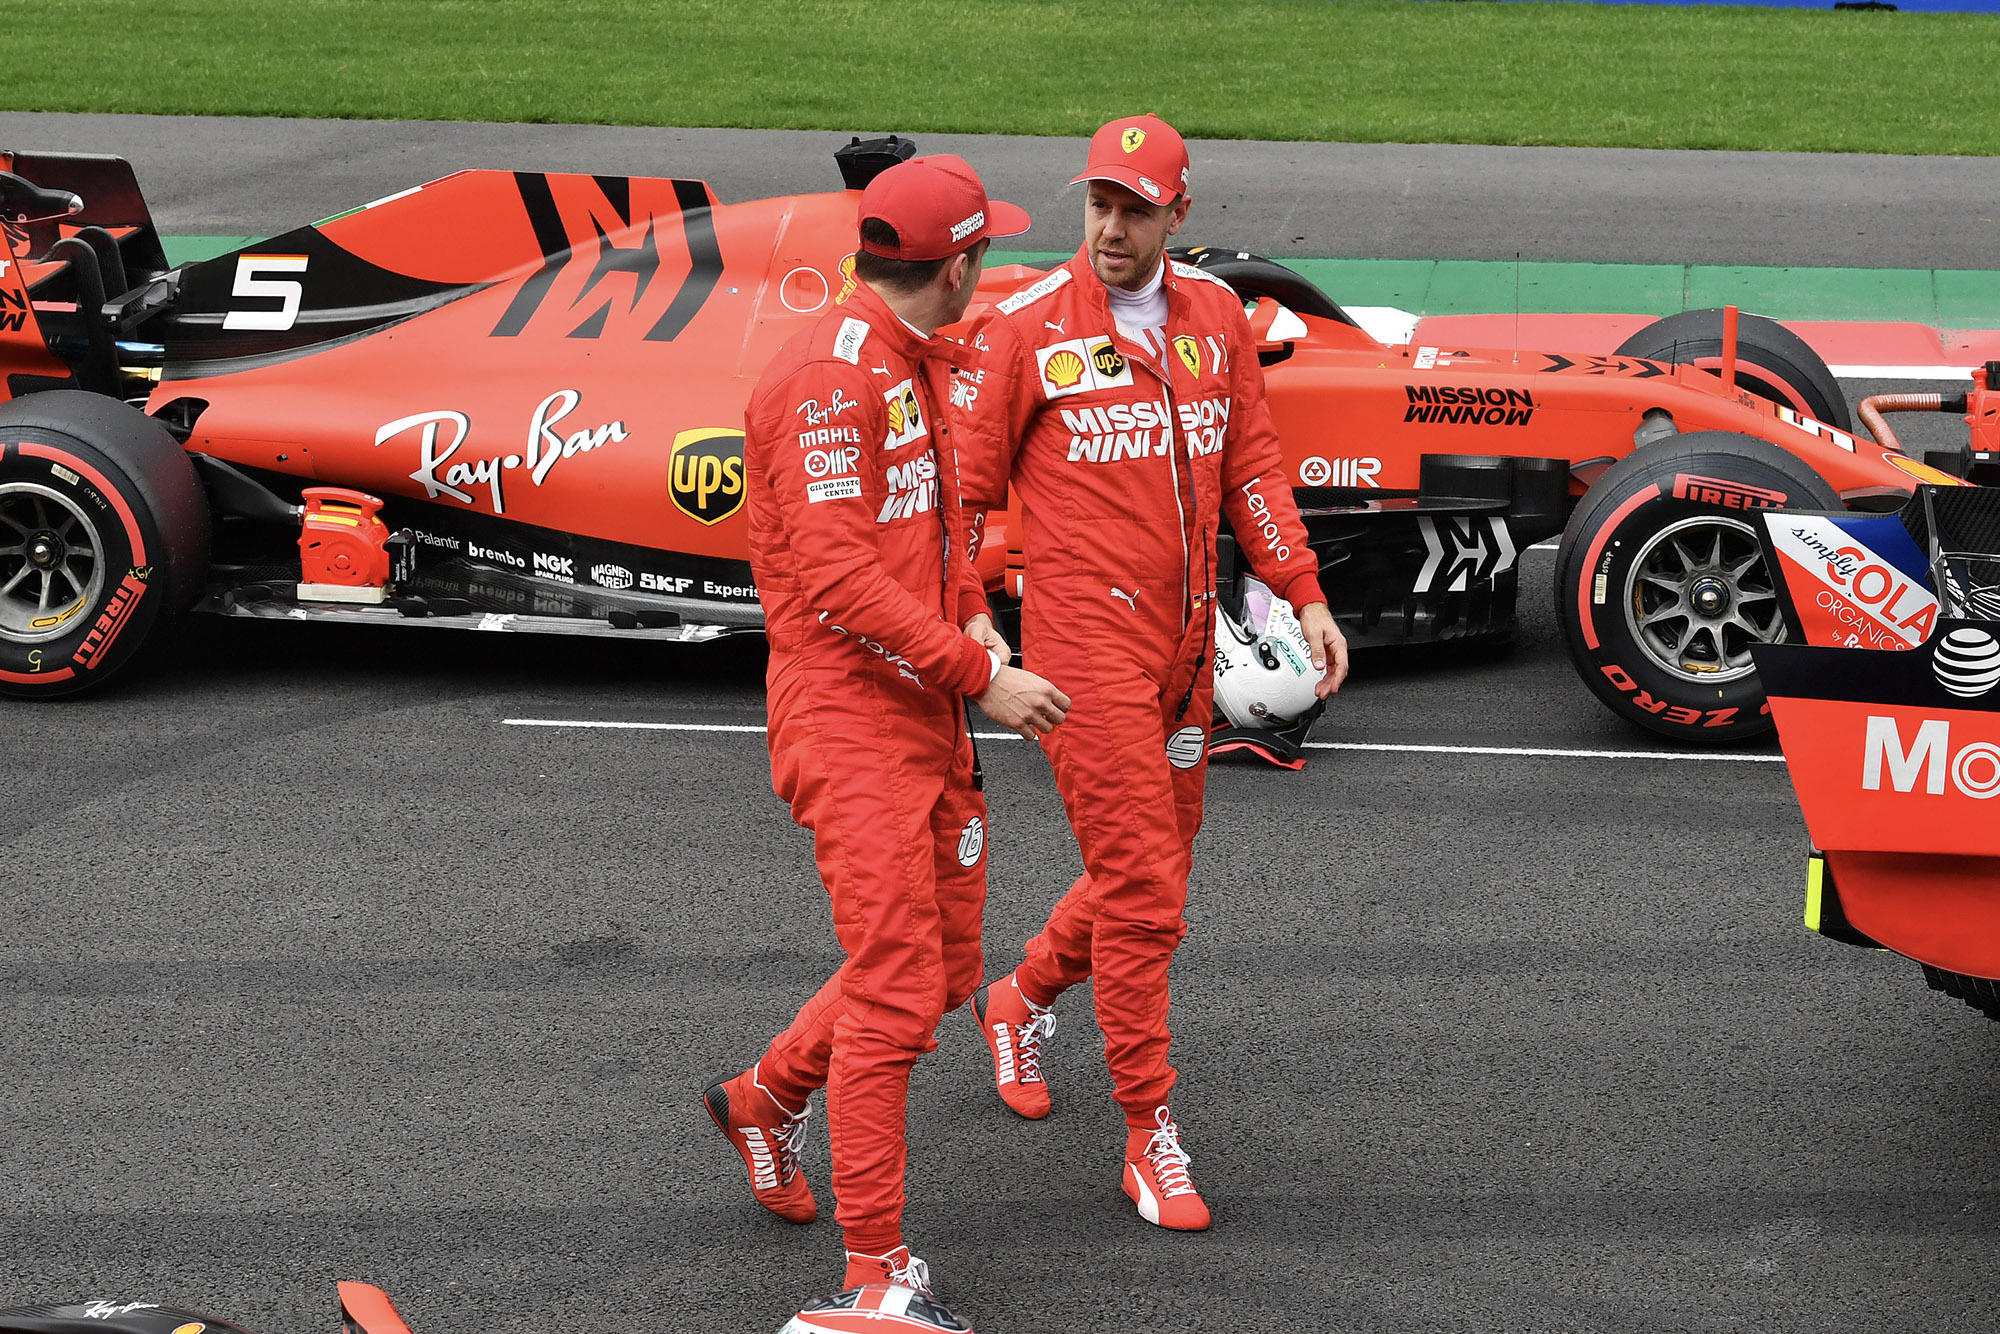 Sebastian Vettel and Charles Leclerc talk after qualifying for the 2019 F1 Mexican Grand Prix